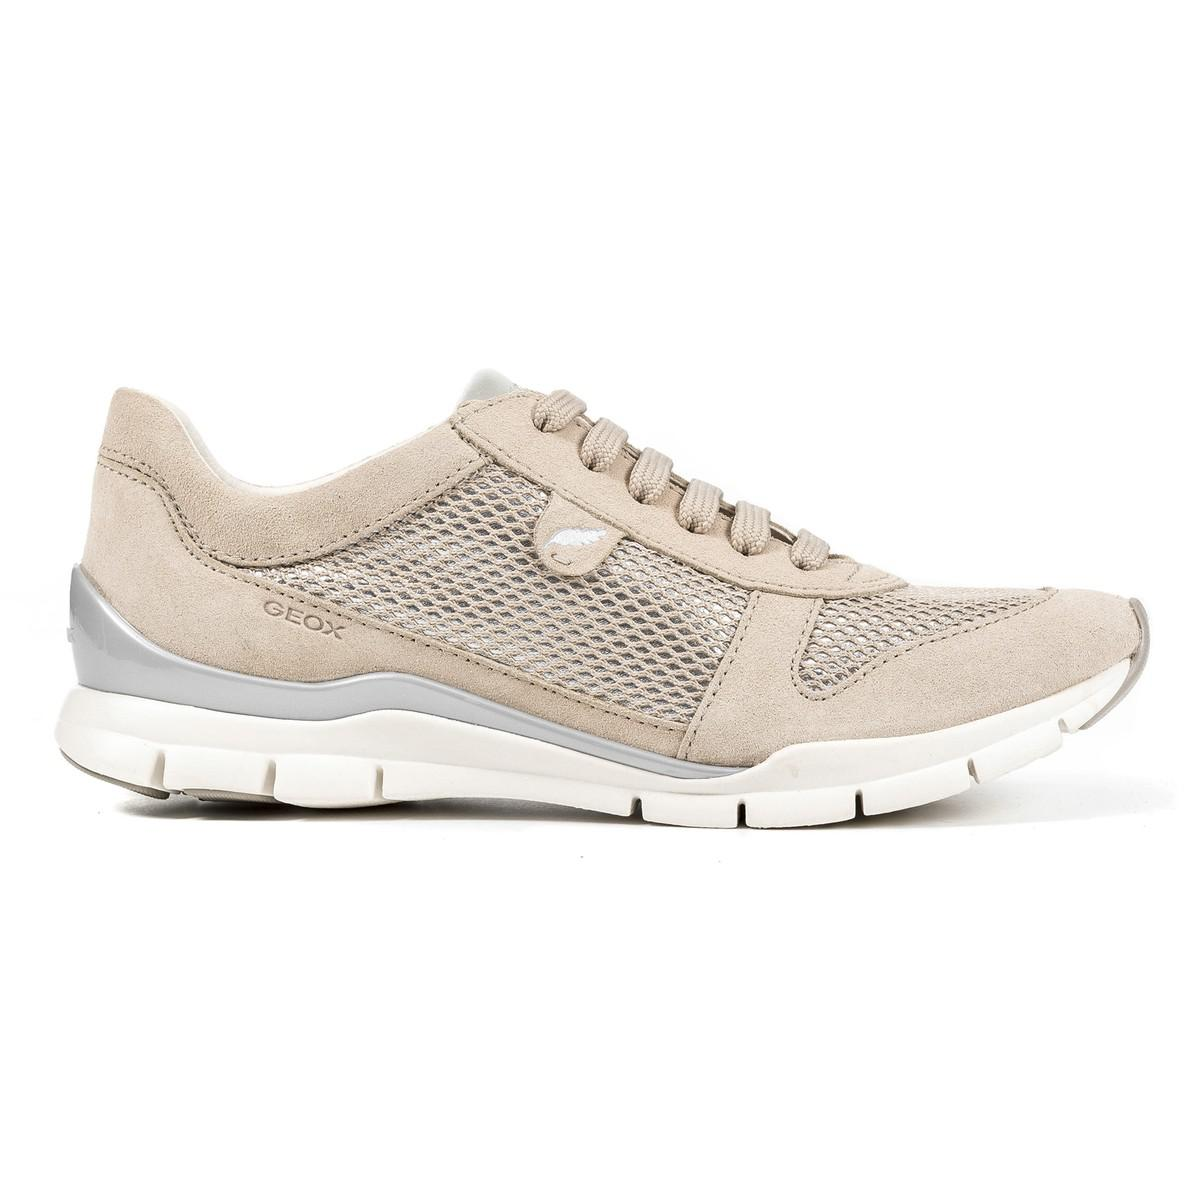 Lyst Geox D Sukie A Trainers Trainers Trainers in Pink e90479